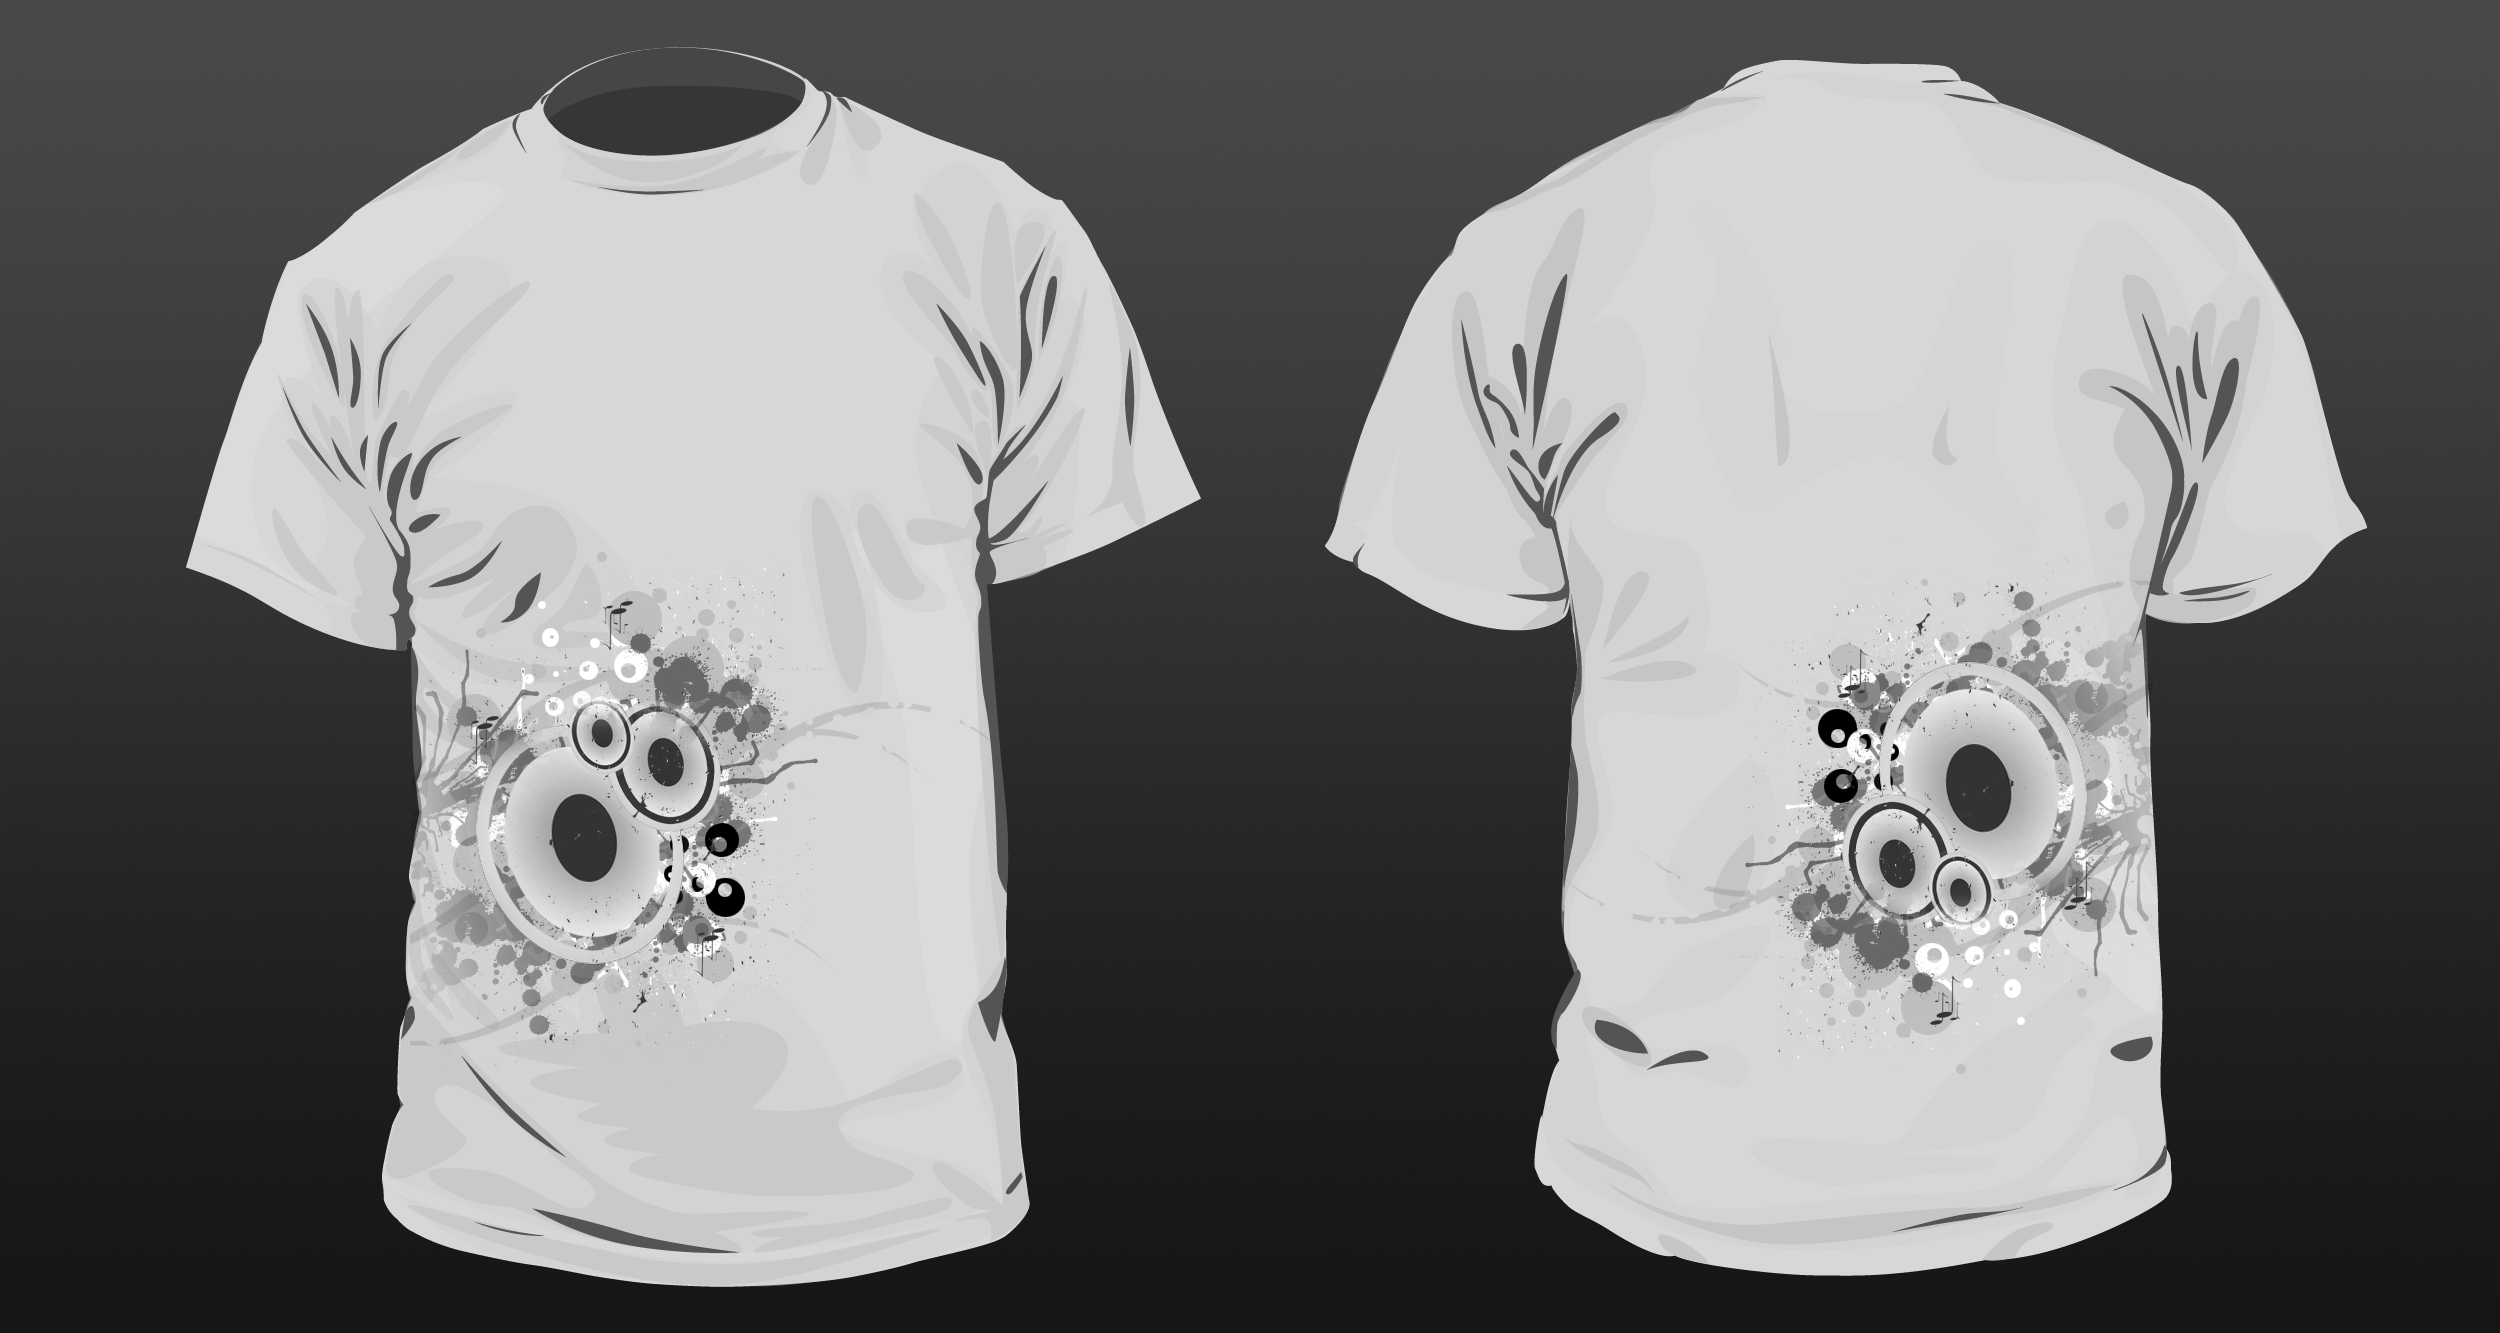 Creativity tshirt design by gkgfx on deviantart for T shirt design companies online